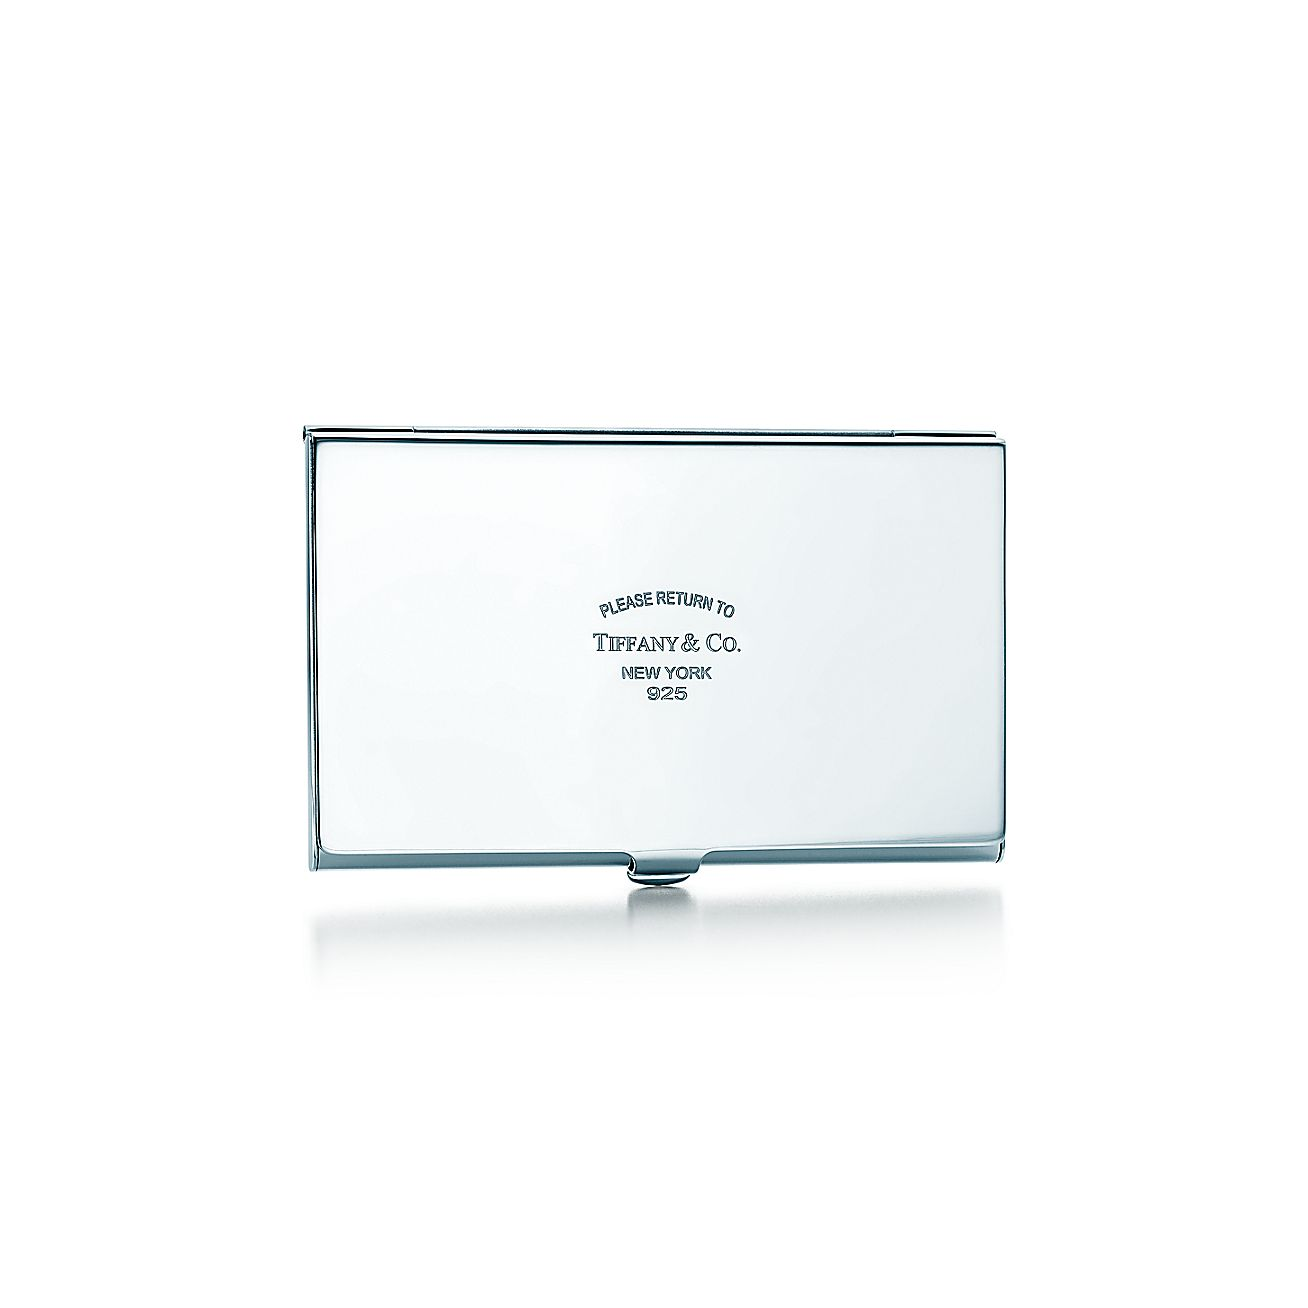 Return to tiffanyr business card case in sterling silver for Tiffany business card case